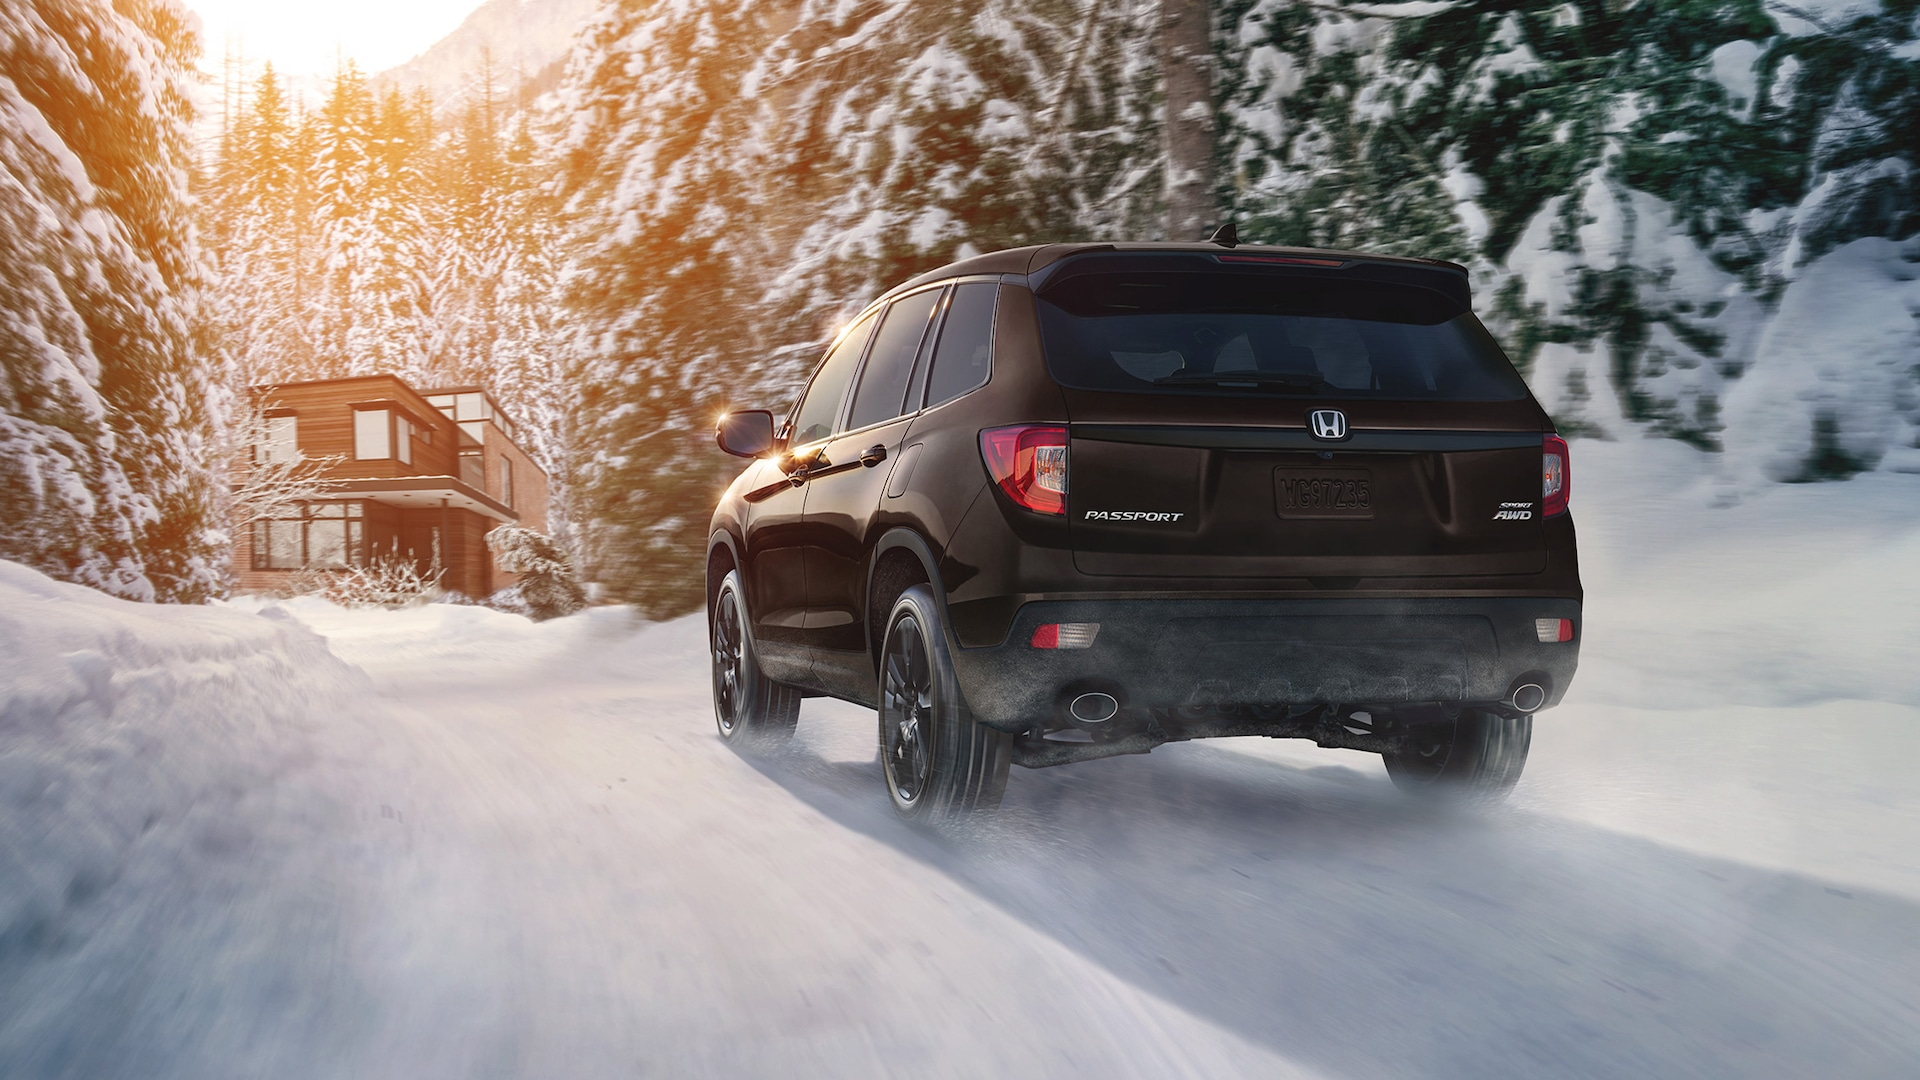 Driver-side rear view of the 2021 Honda Passport AWD Sport in Black Copper Pearl driving along a snowy forest road.